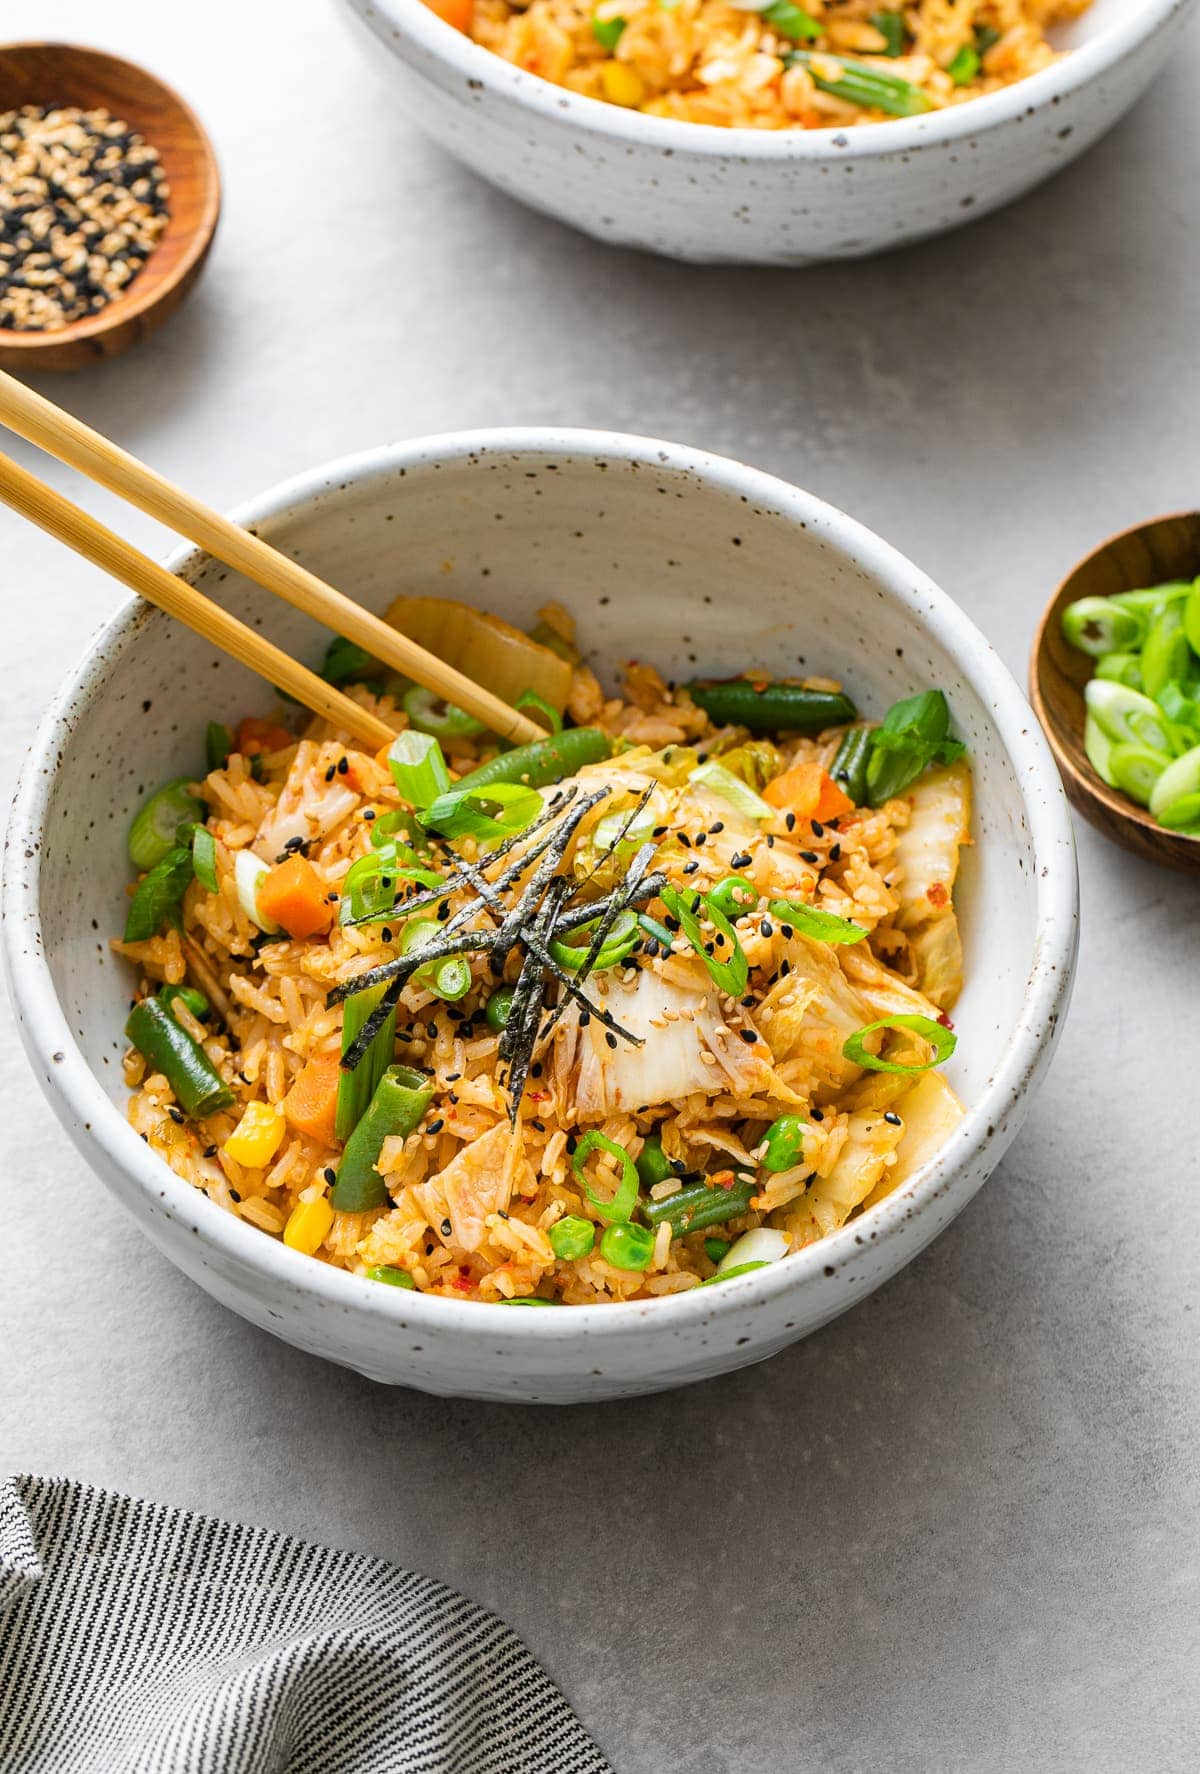 side angle view of bowl with serving of kimchi fried rice with chopsticks.